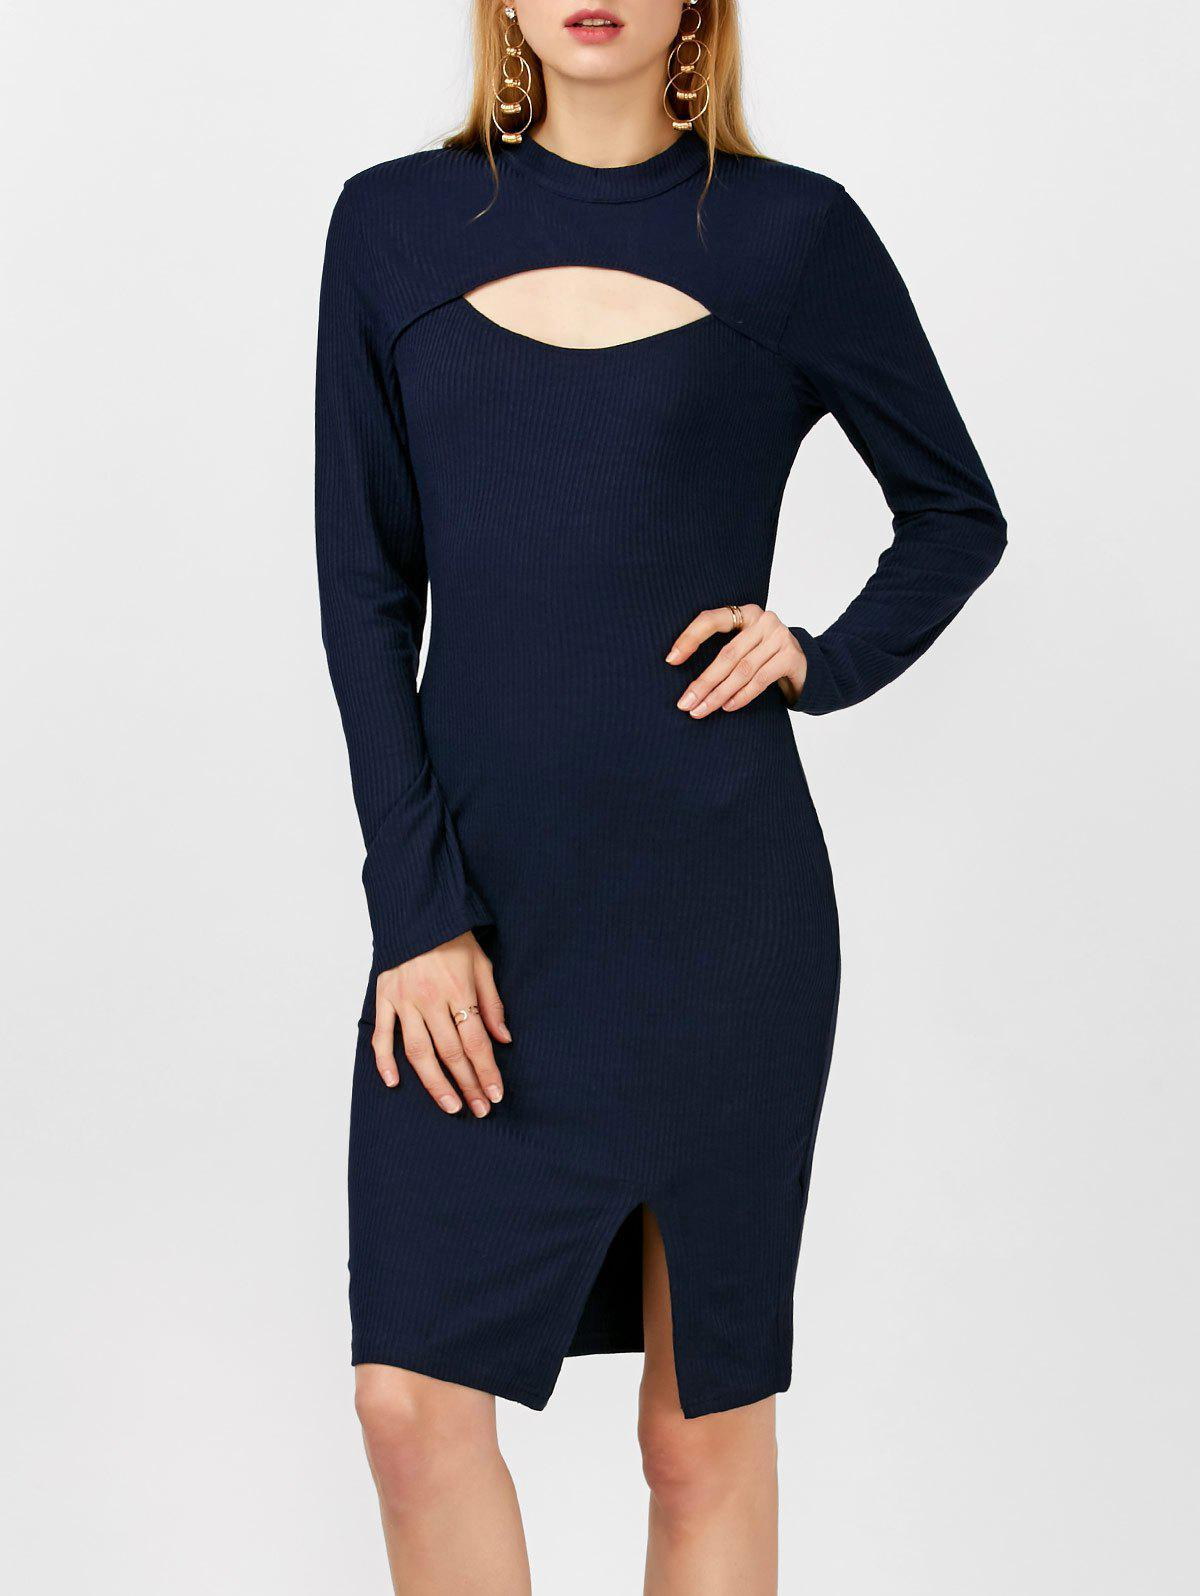 Mock Neck Ribbed Cutout Bodycon Slit Dress With Long Sleeves 211135305